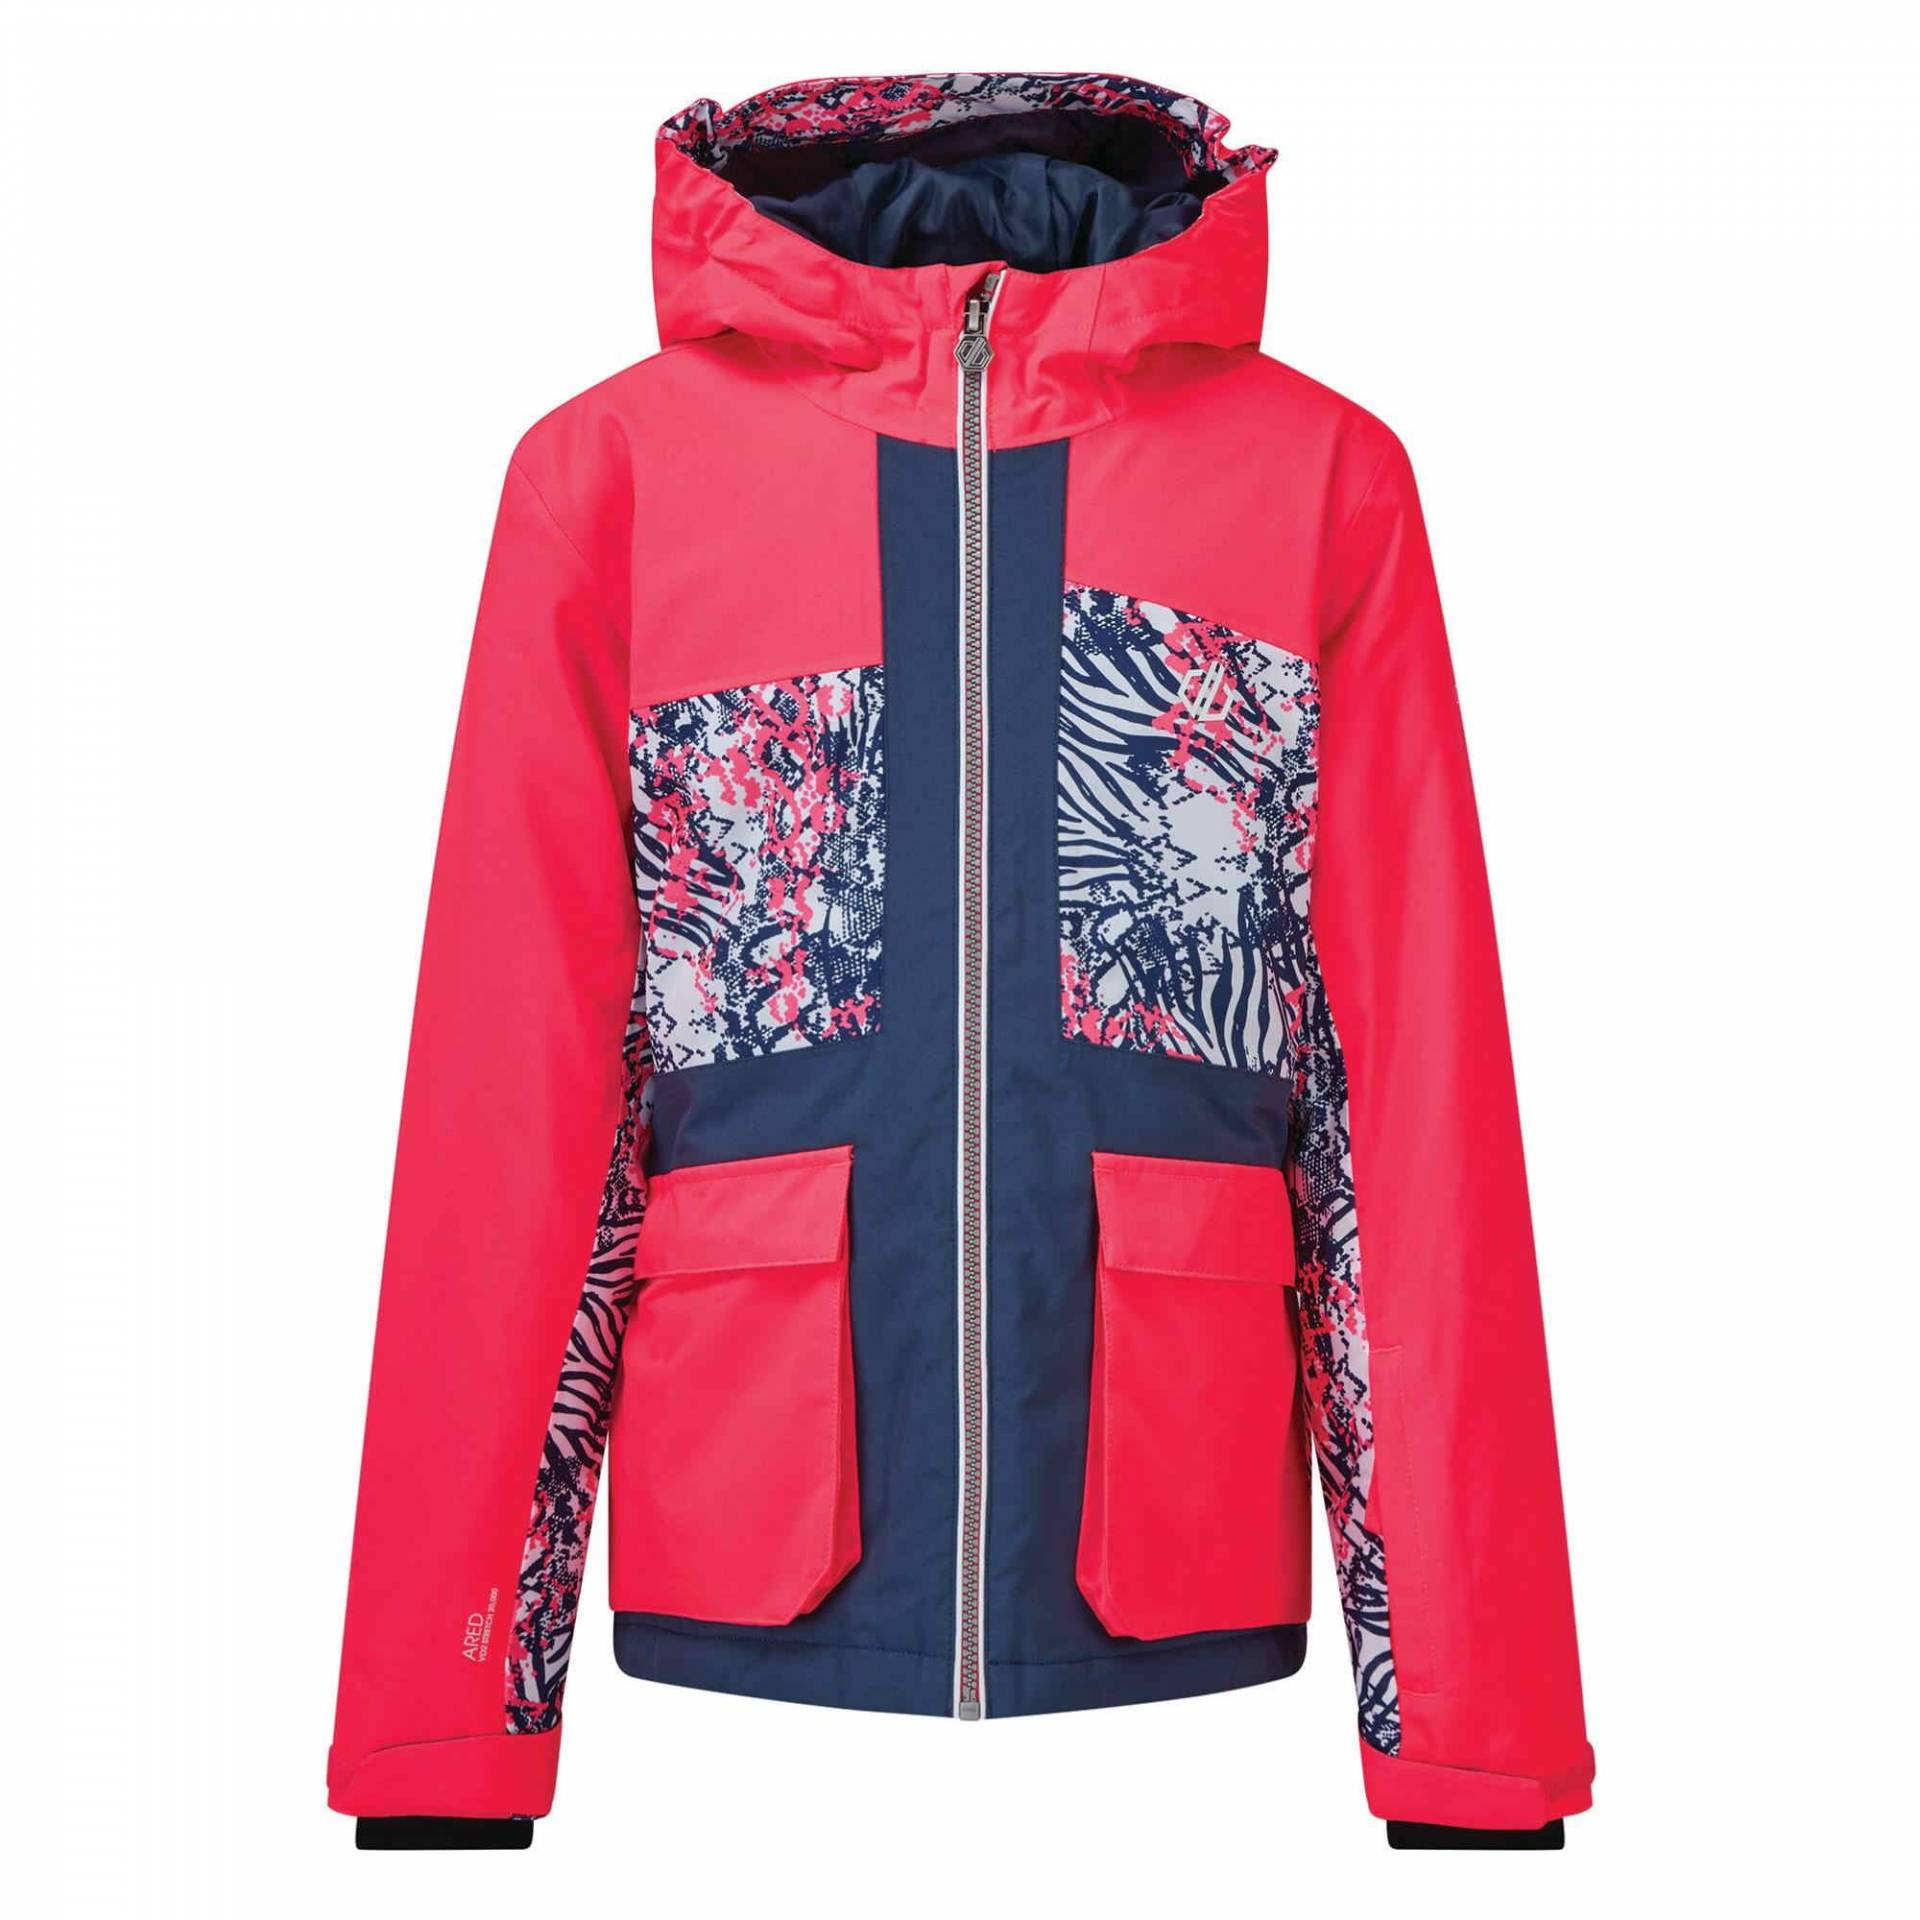 dare2b Esteem Jacket Kinder Skijacke pink von Dare2b